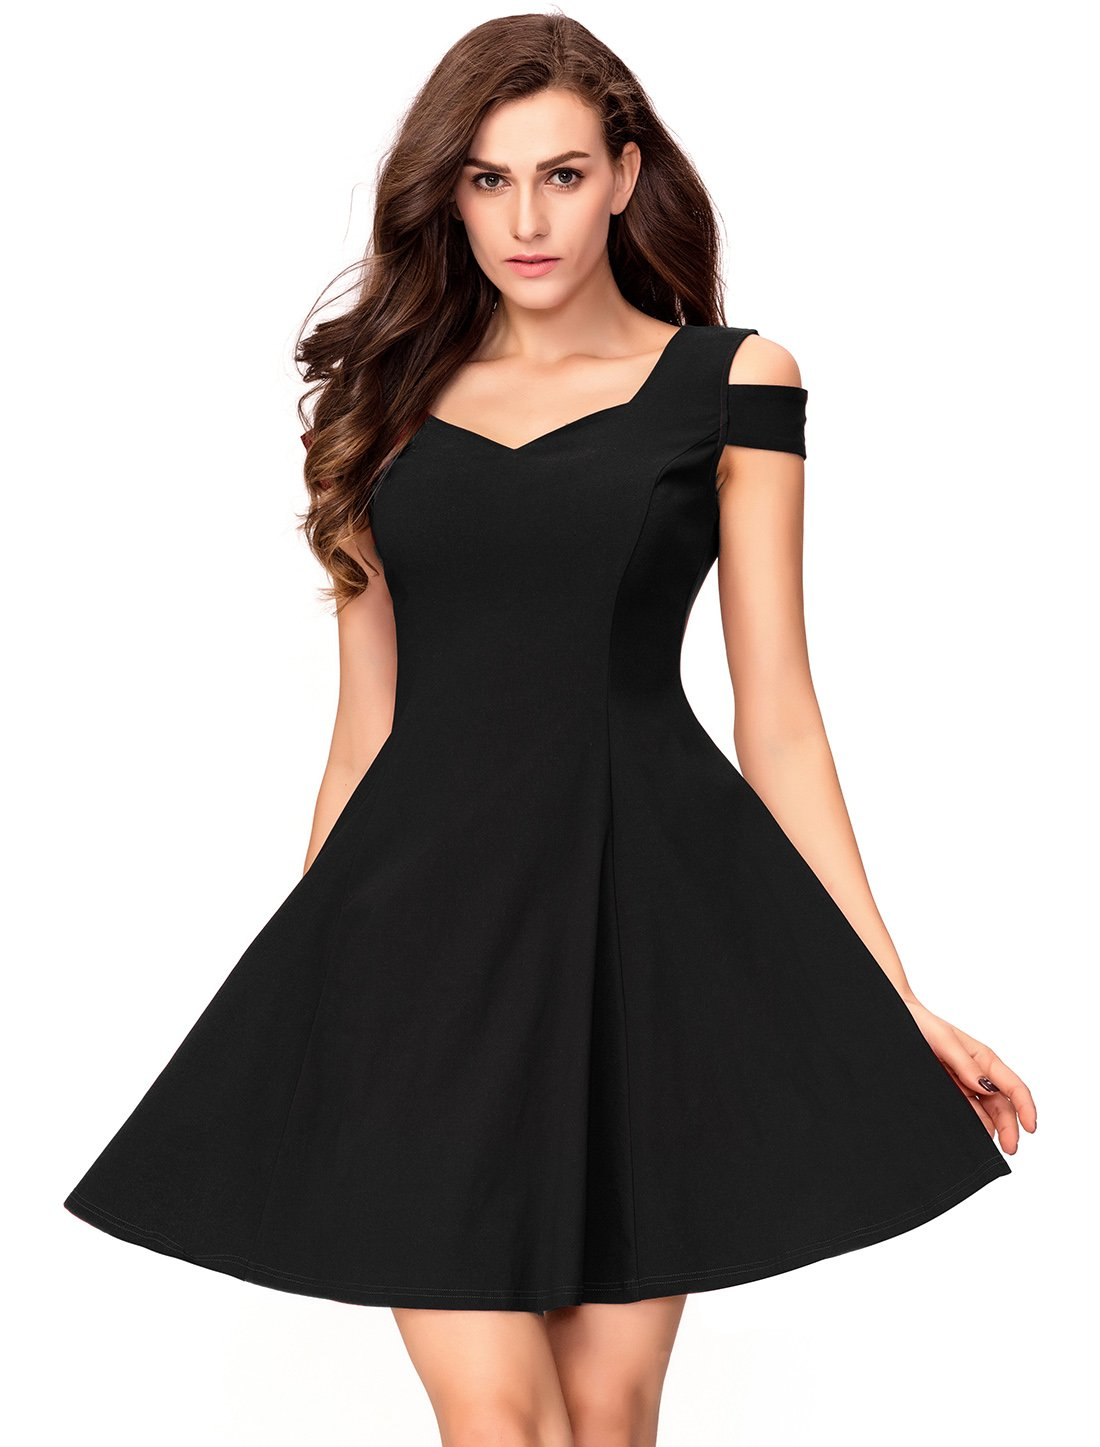 InsNova Cold Shoulder Flare Black Cocktail Dress for Women Evening Party by InsNova (Image #1)